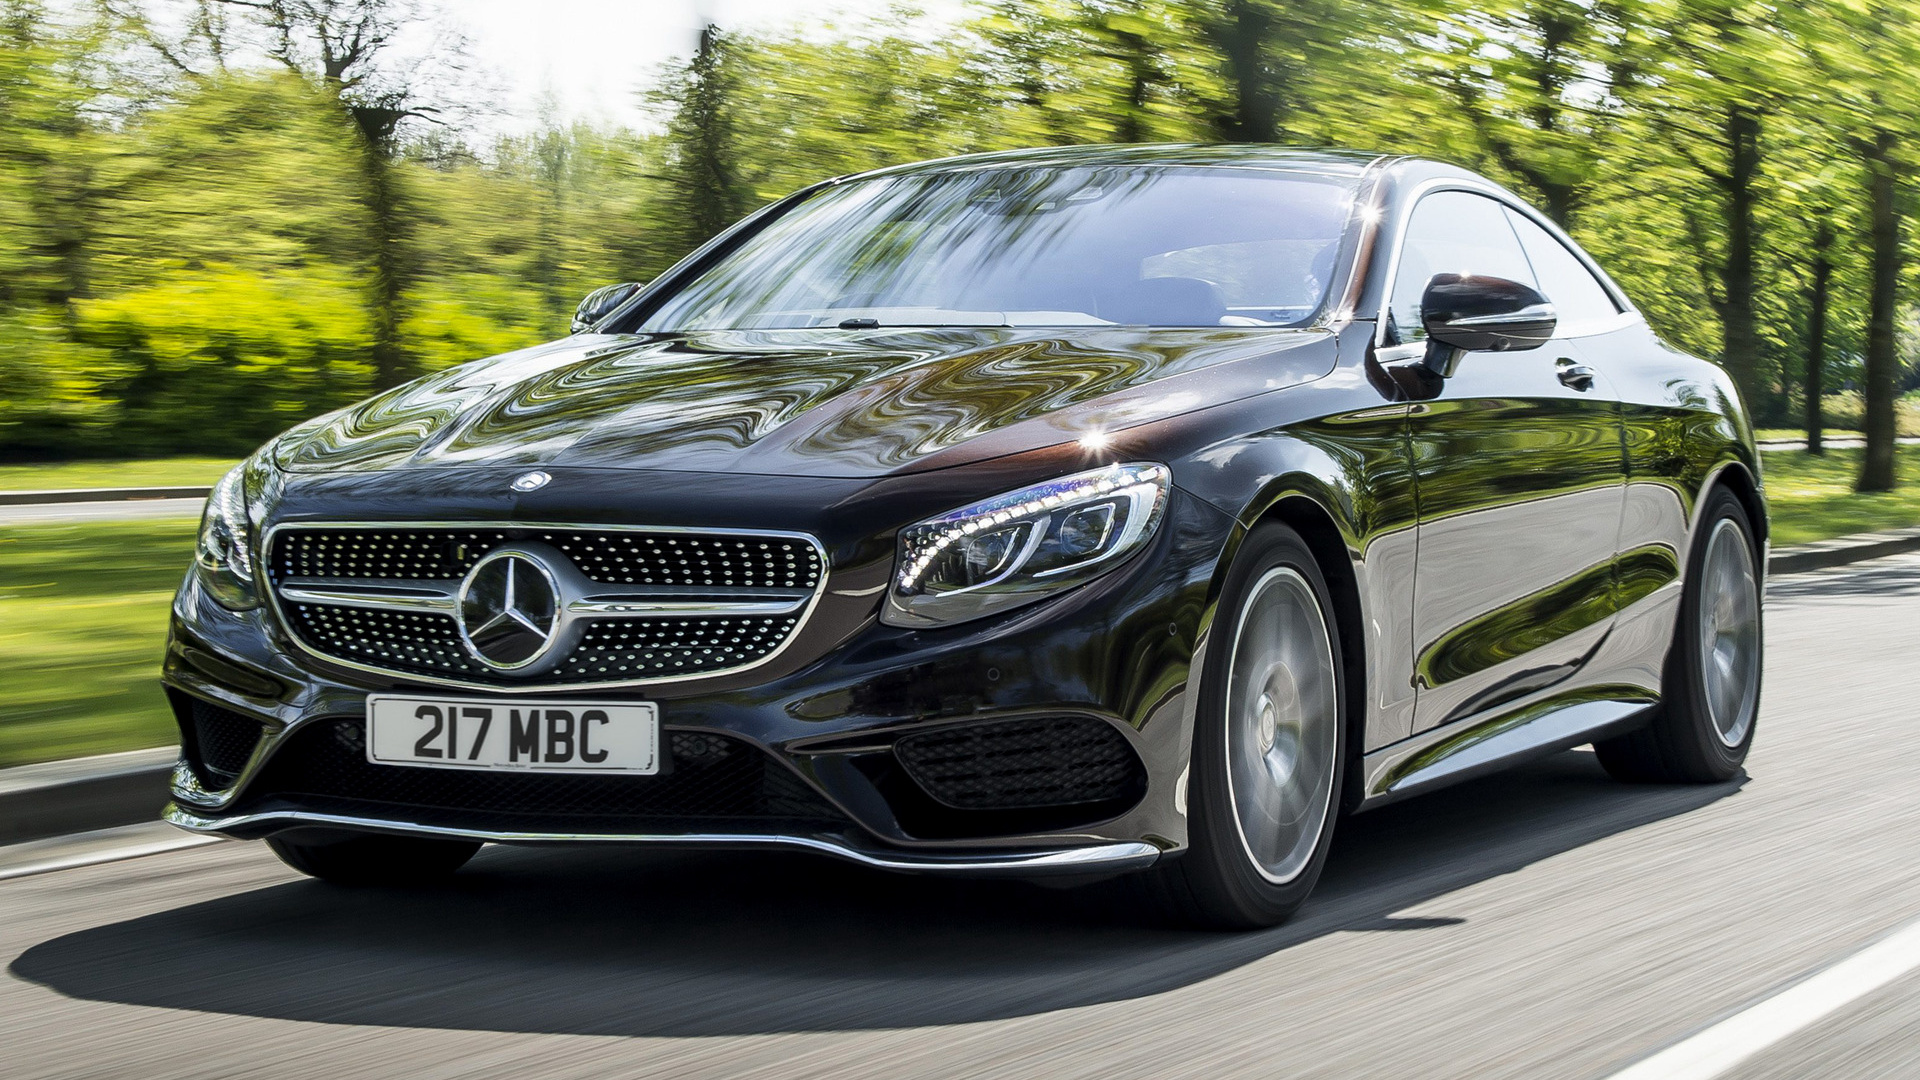 2014 Mercedes Benz S Class Coupe Amg Line Uk